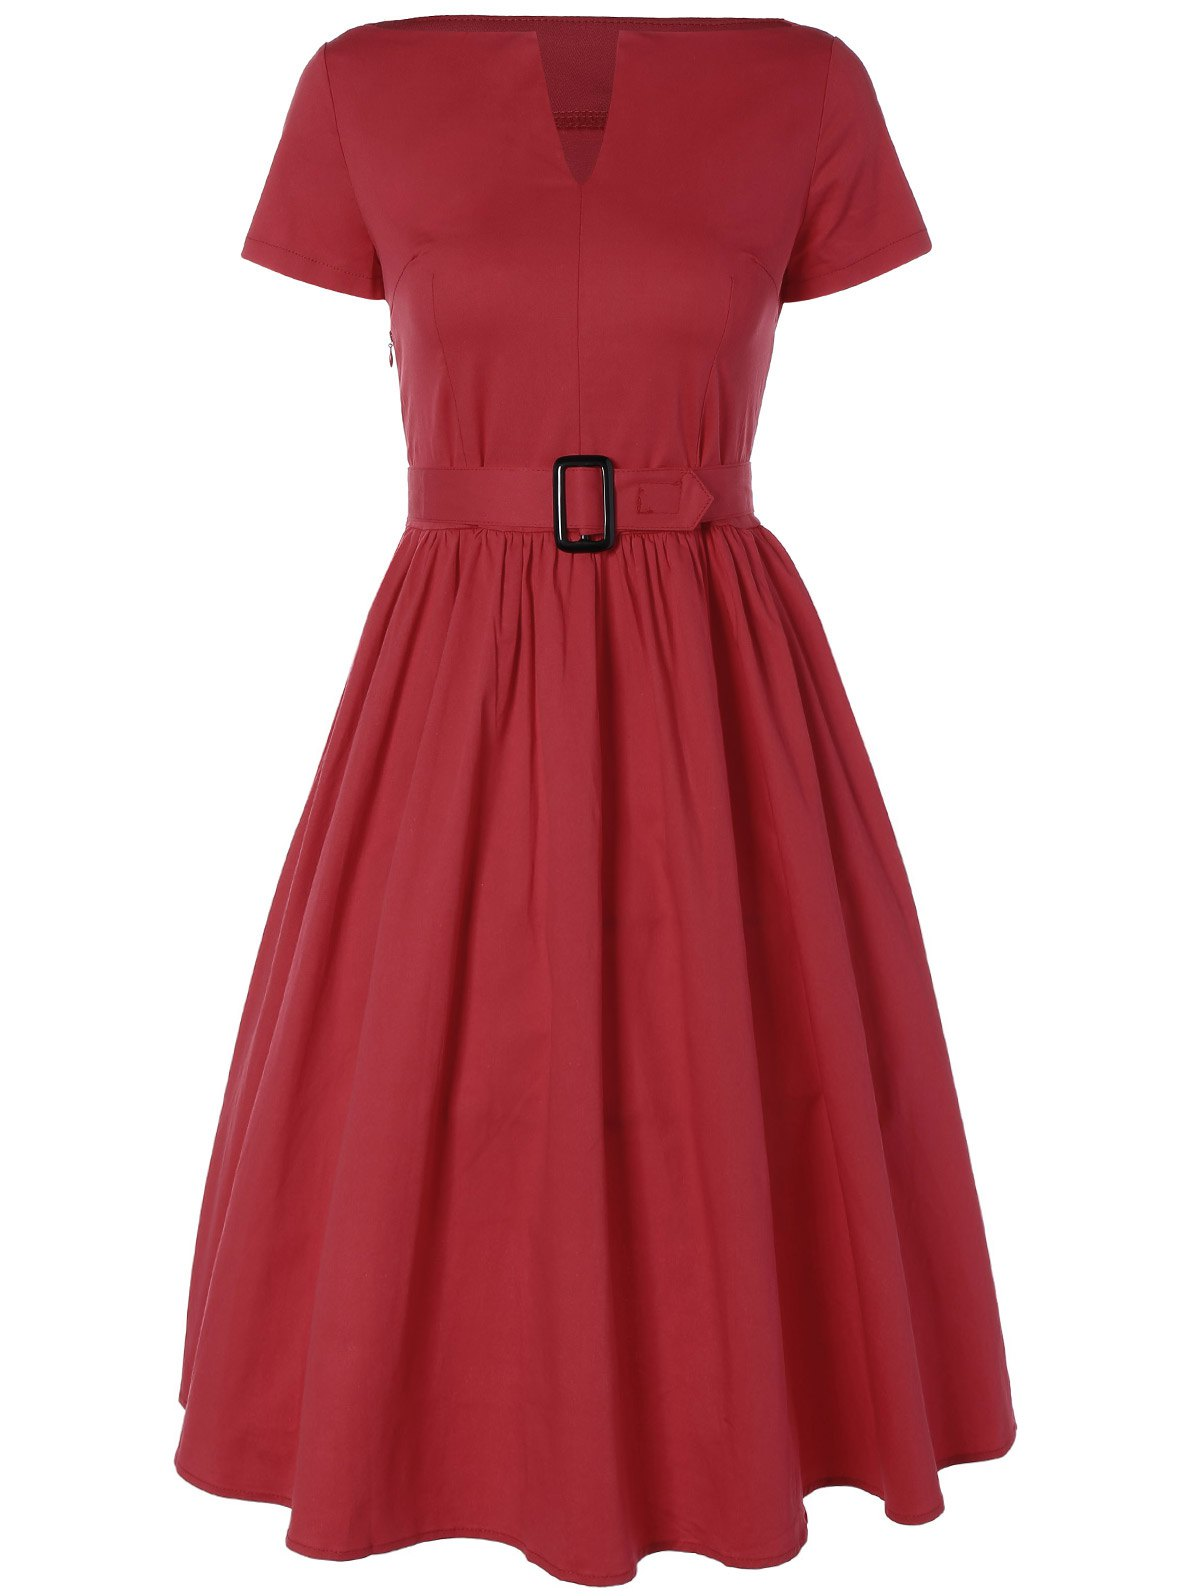 Plus Size Midi Pin Up Skater DressWOMEN<br><br>Size: 3XL; Color: RED; Style: Vintage; Material: Polyester; Silhouette: A-Line; Dresses Length: Mid-Calf; Neckline: V-Neck; Sleeve Length: Short Sleeves; Pattern Type: Solid; With Belt: Yes; Season: Summer; Weight: 0.350kg; Package Contents: 1 x Dress  1 x Belt;